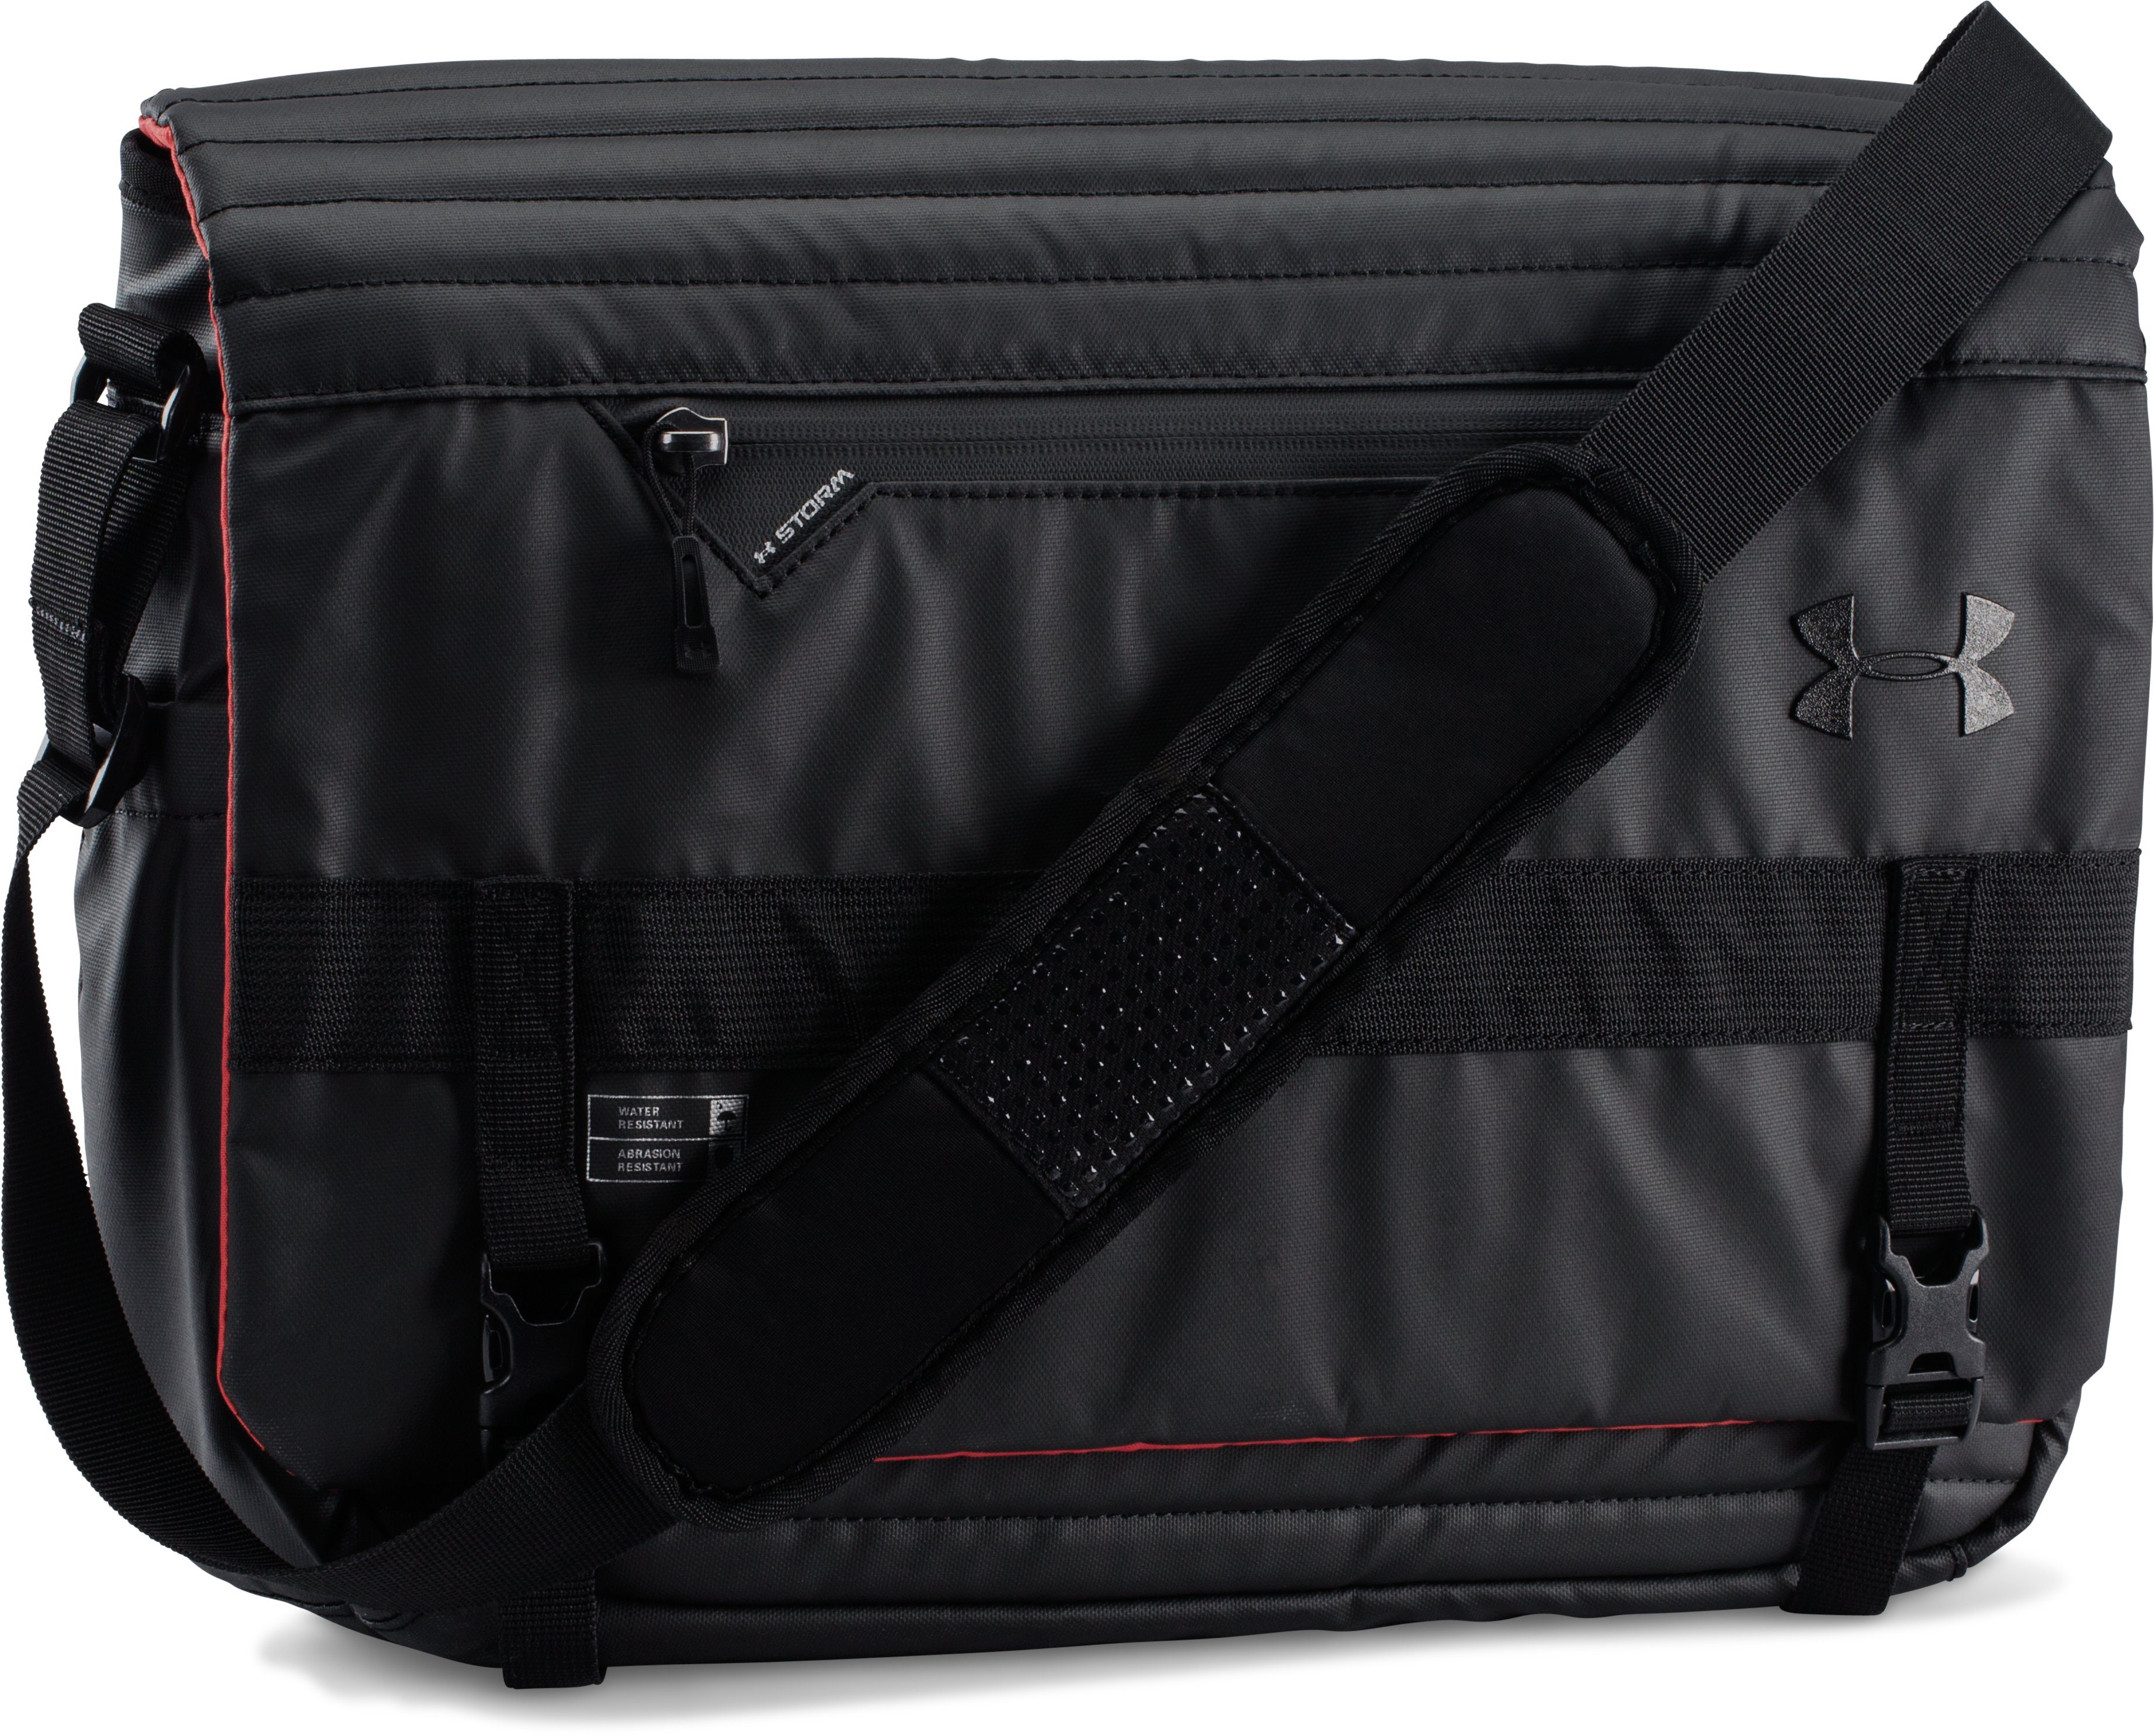 UA VX2-M Messenger Bag, Black